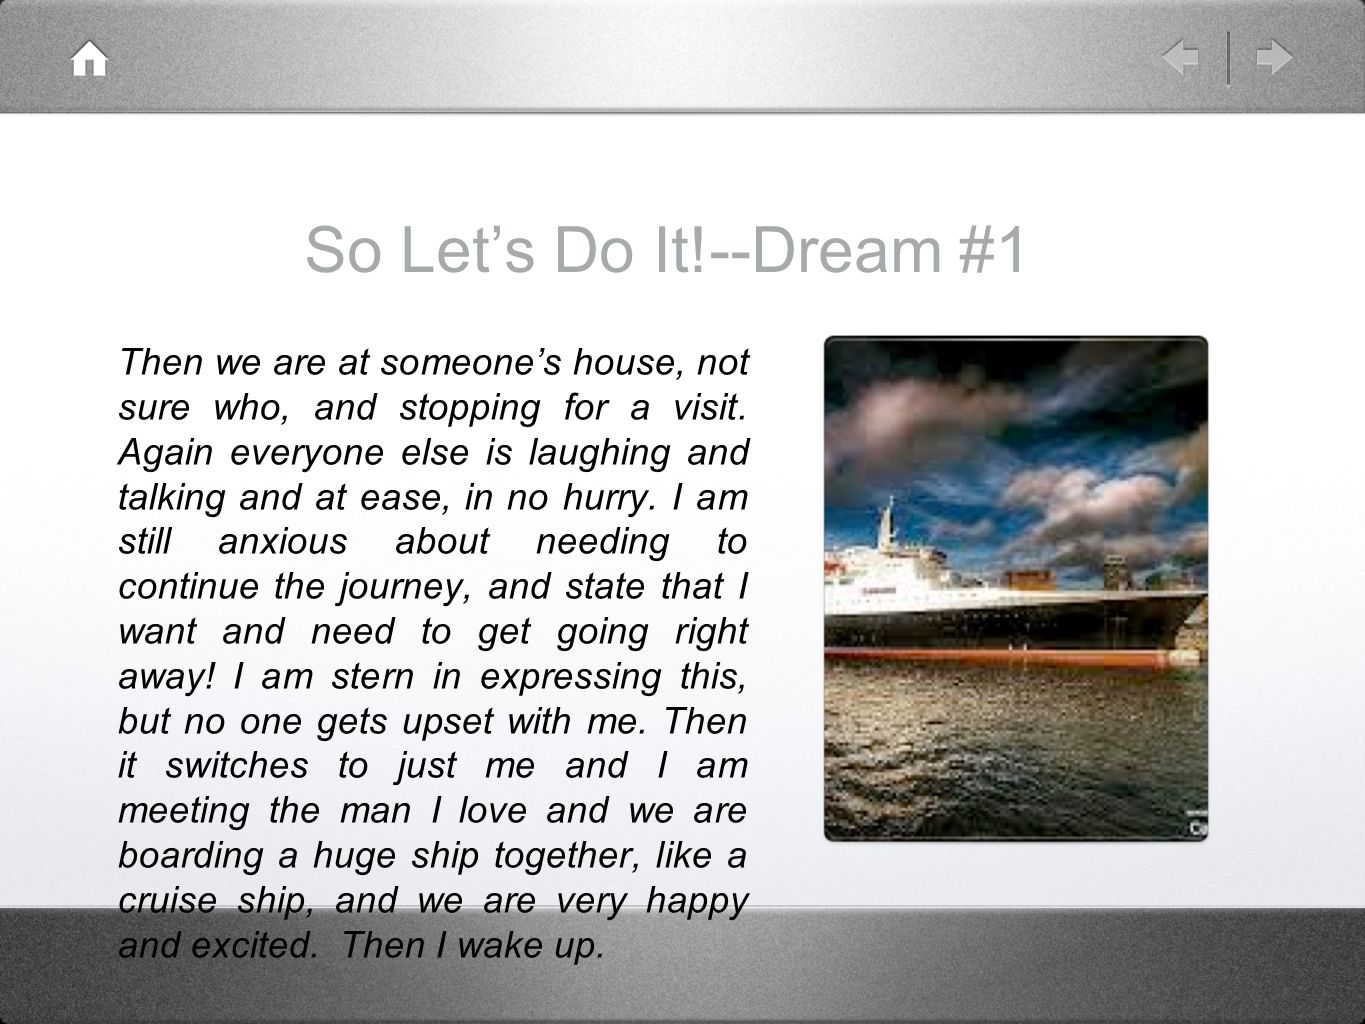 So Let's Do It!--Dream #1 Then we are at someone's house, not sure who, and stopping for a visit.